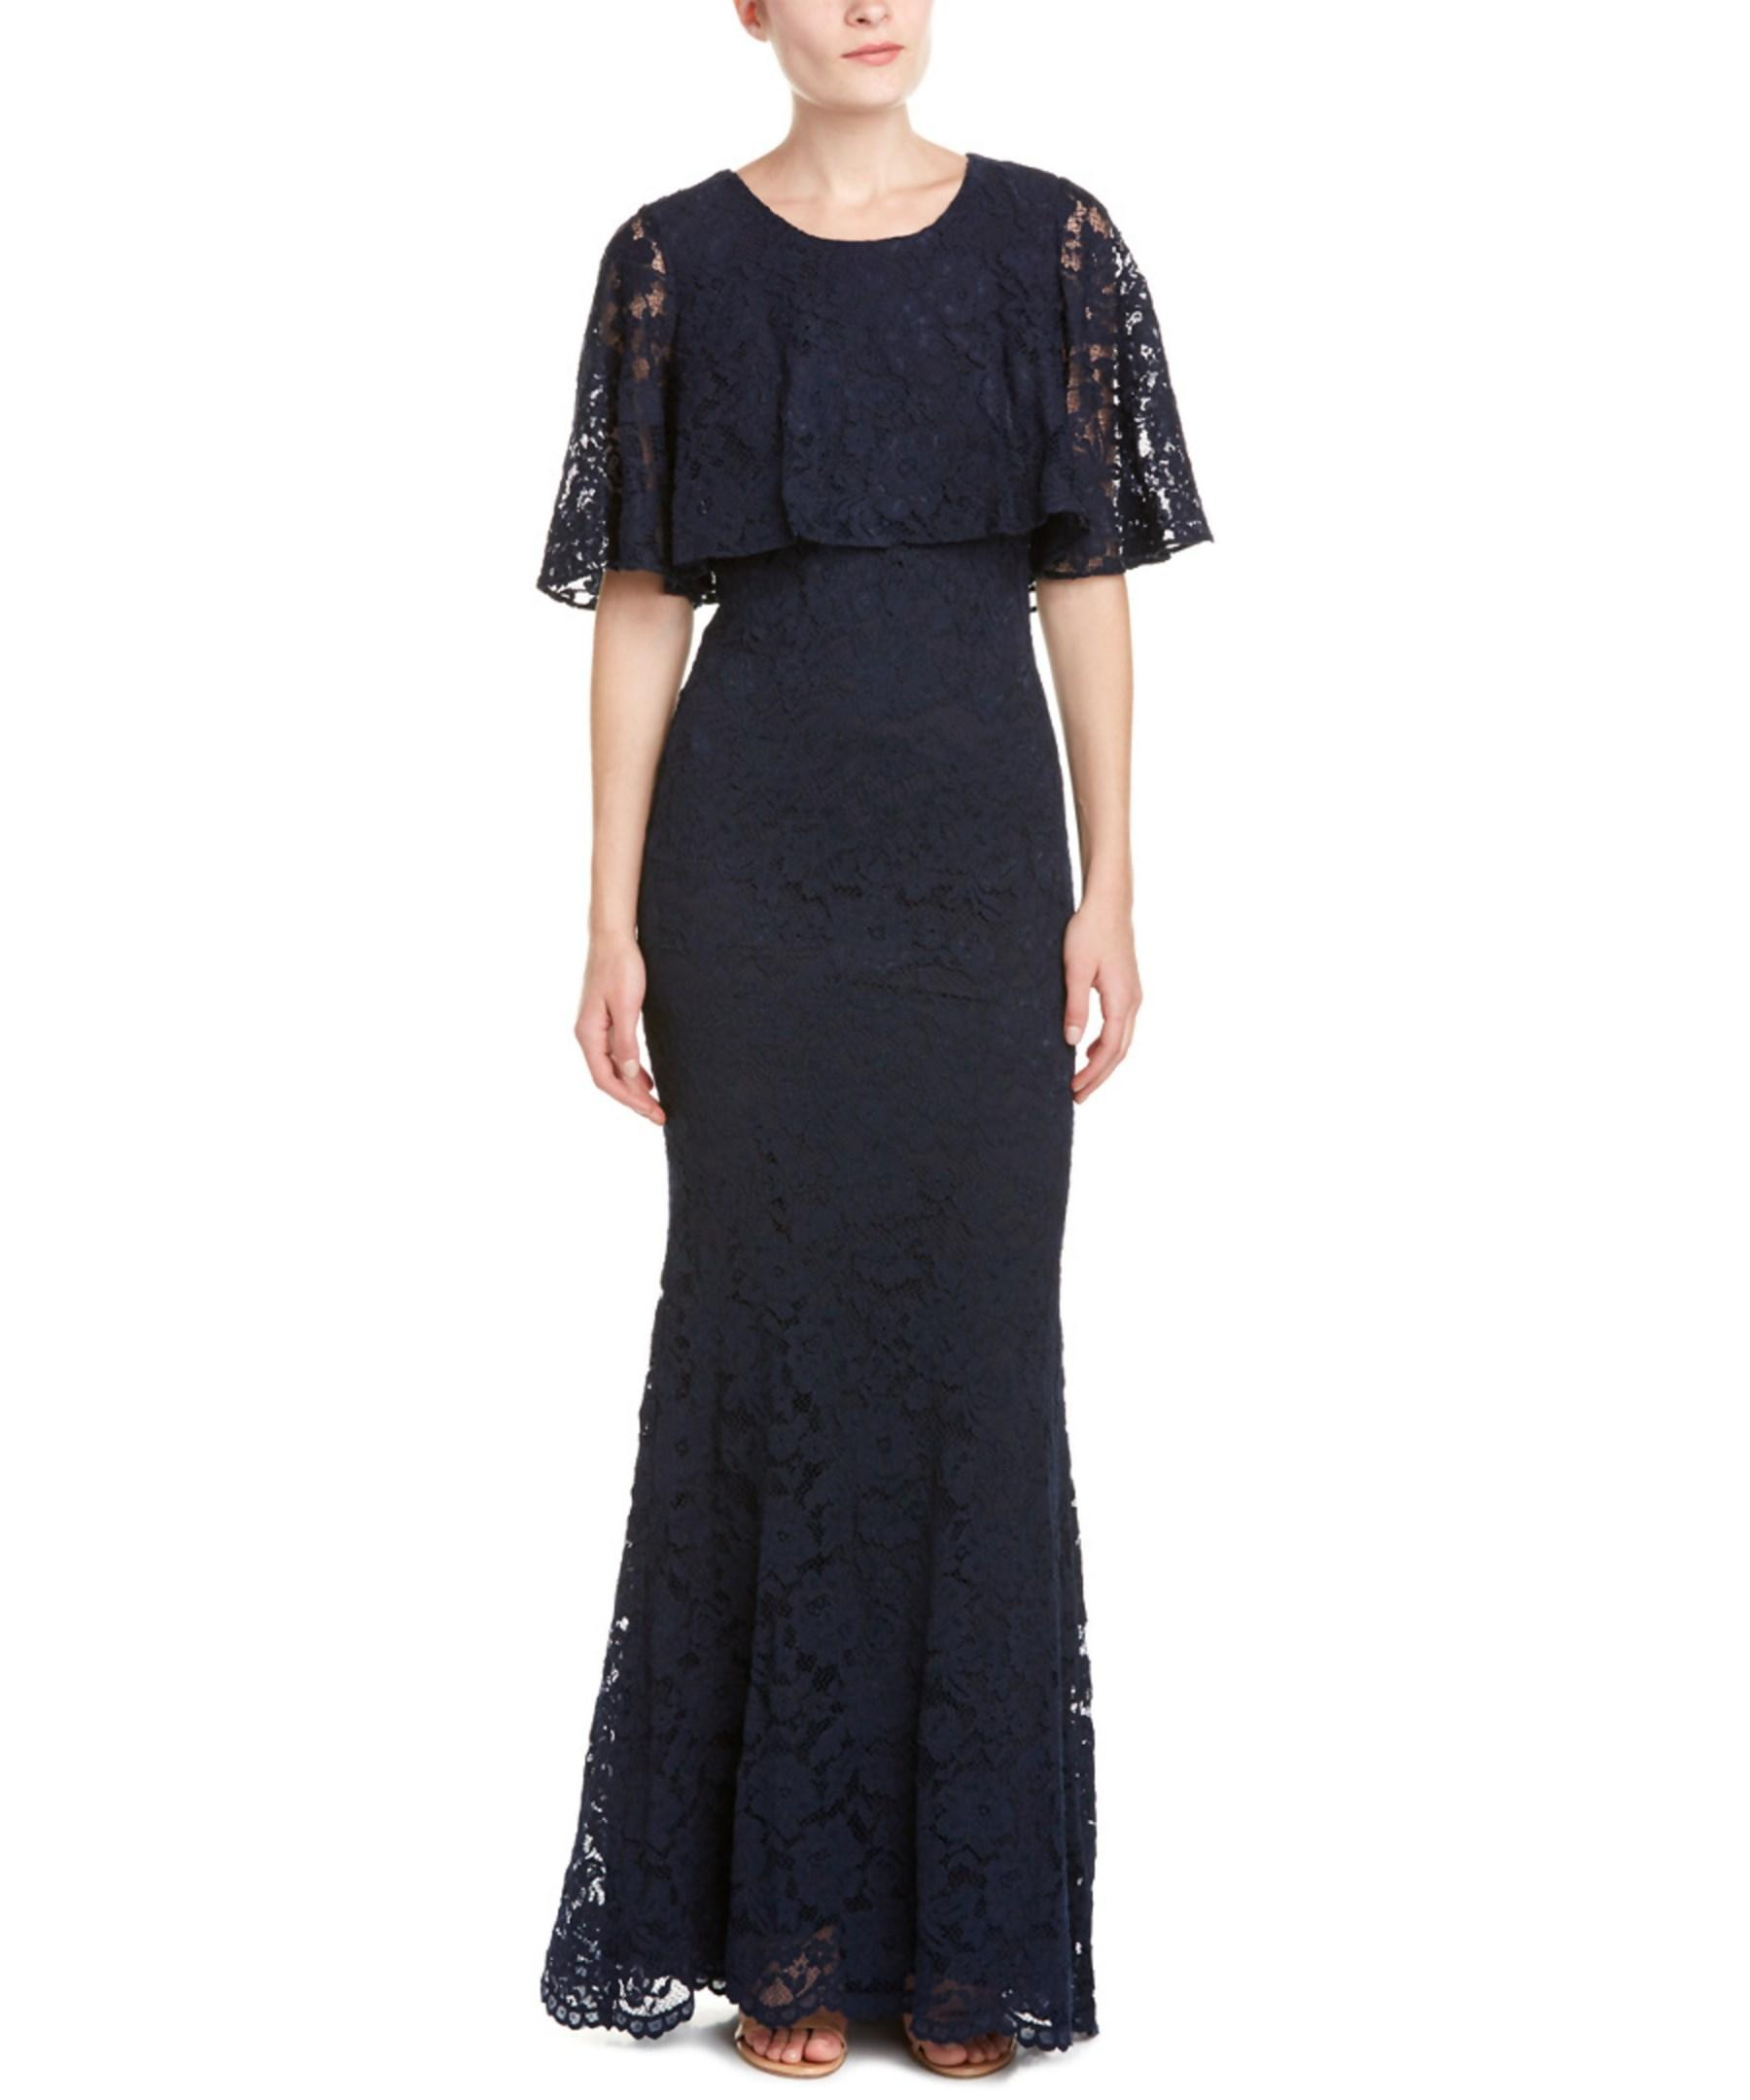 Badgley mischka lace ruffle popover evening gown in blue for Badgley mischka store nyc